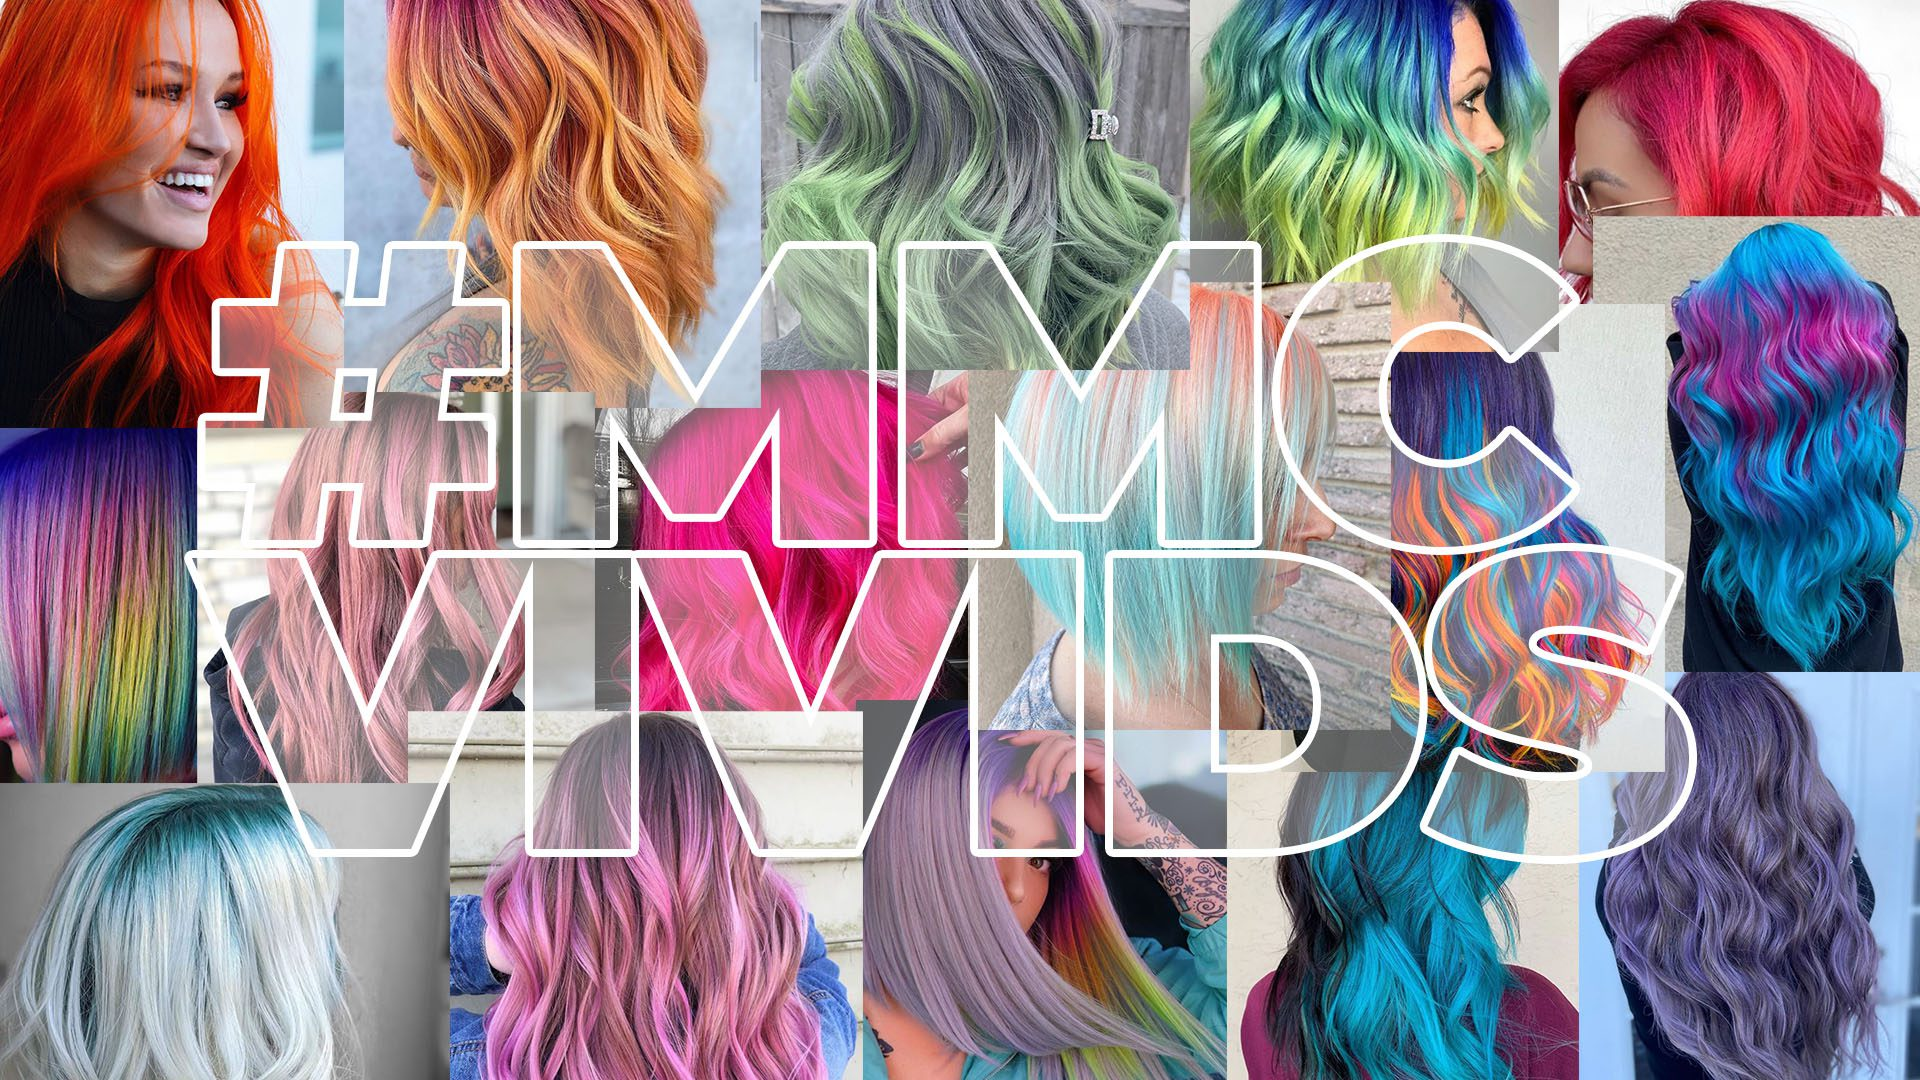 Vivid Hair Color Style and Haircuts at #MMCstyle Salon in Madison